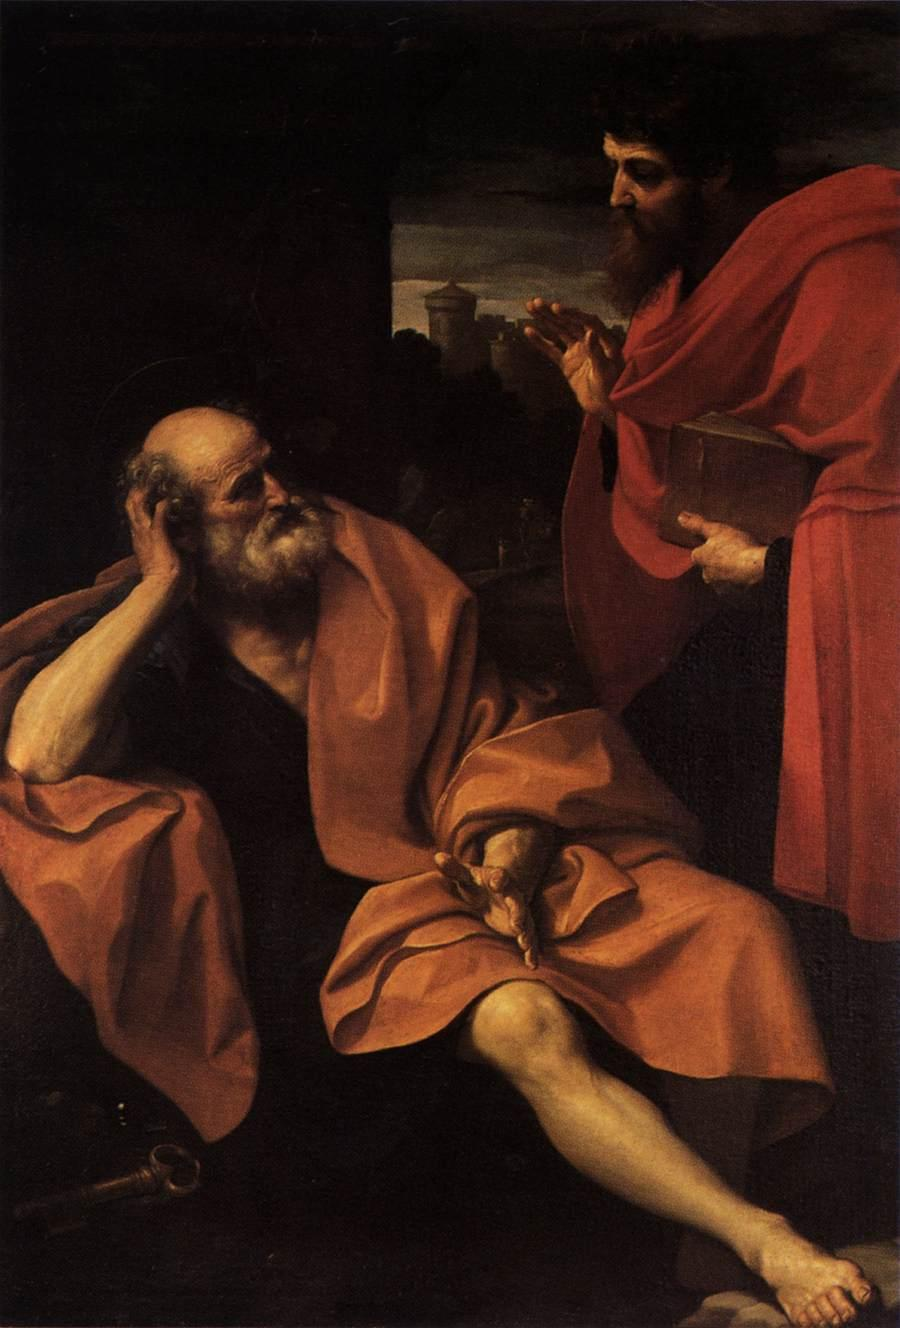 Saint Peter and Saint Paul Jose' de Ribera - circa 1616